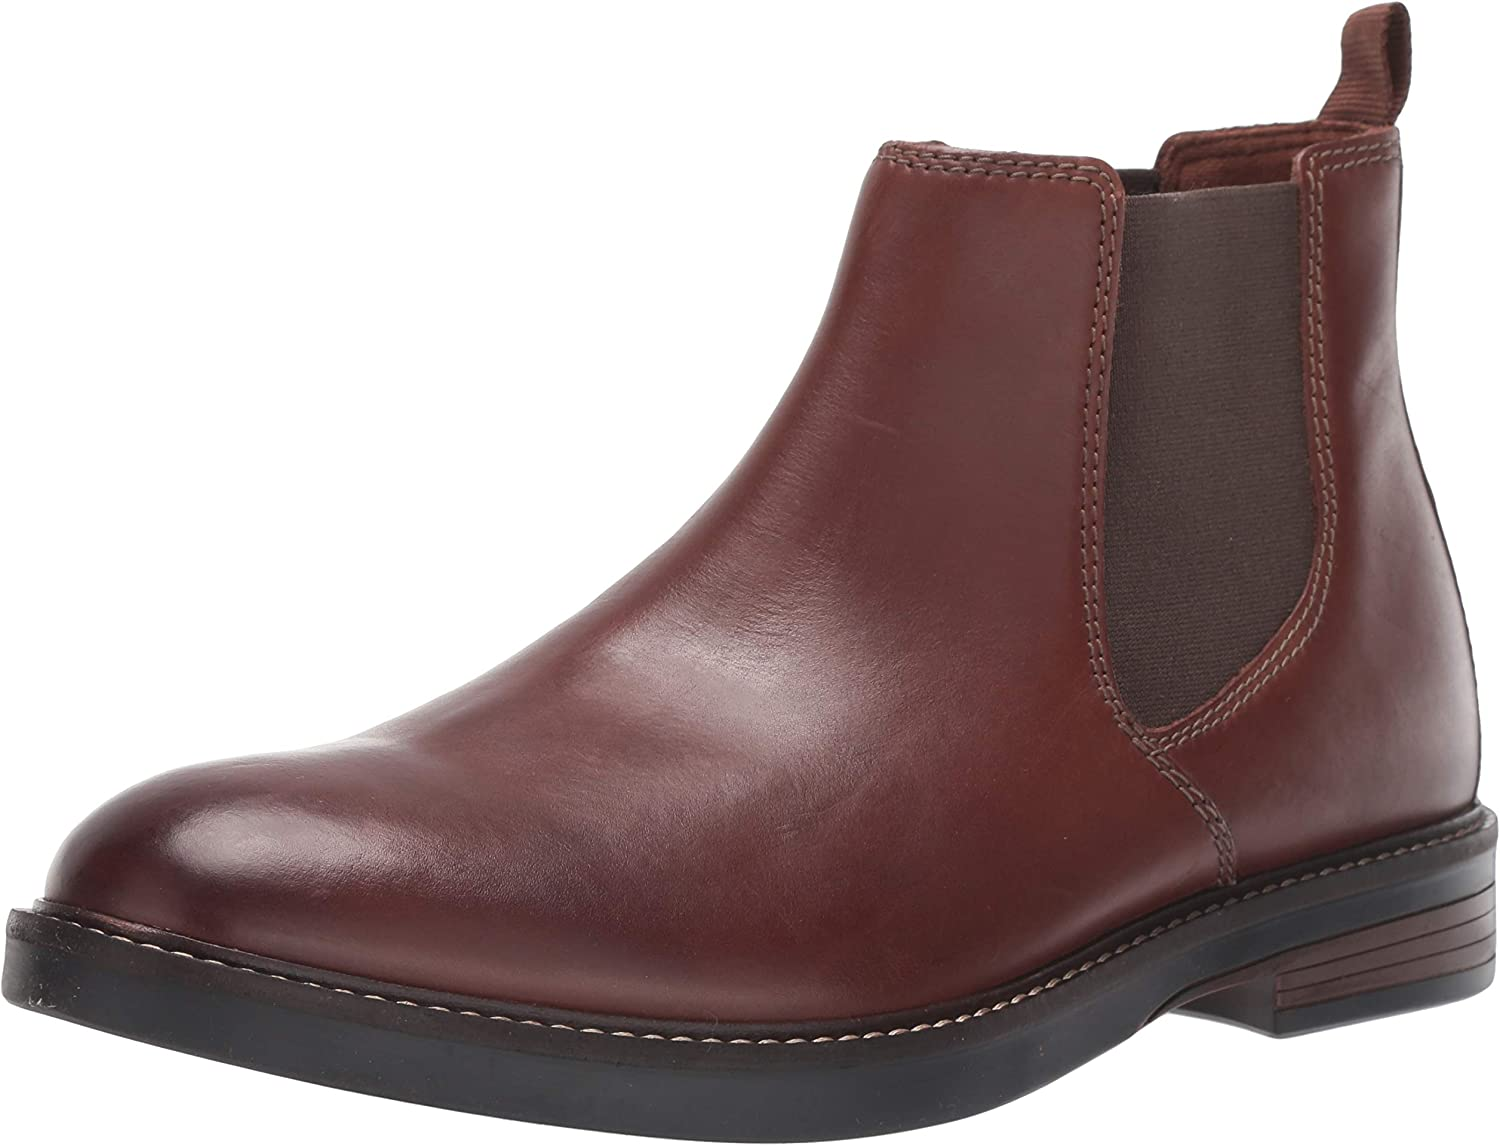 Clarks Men's Paulson Boot Chelsea Up New products, world's highest quality popular! Bargain sale